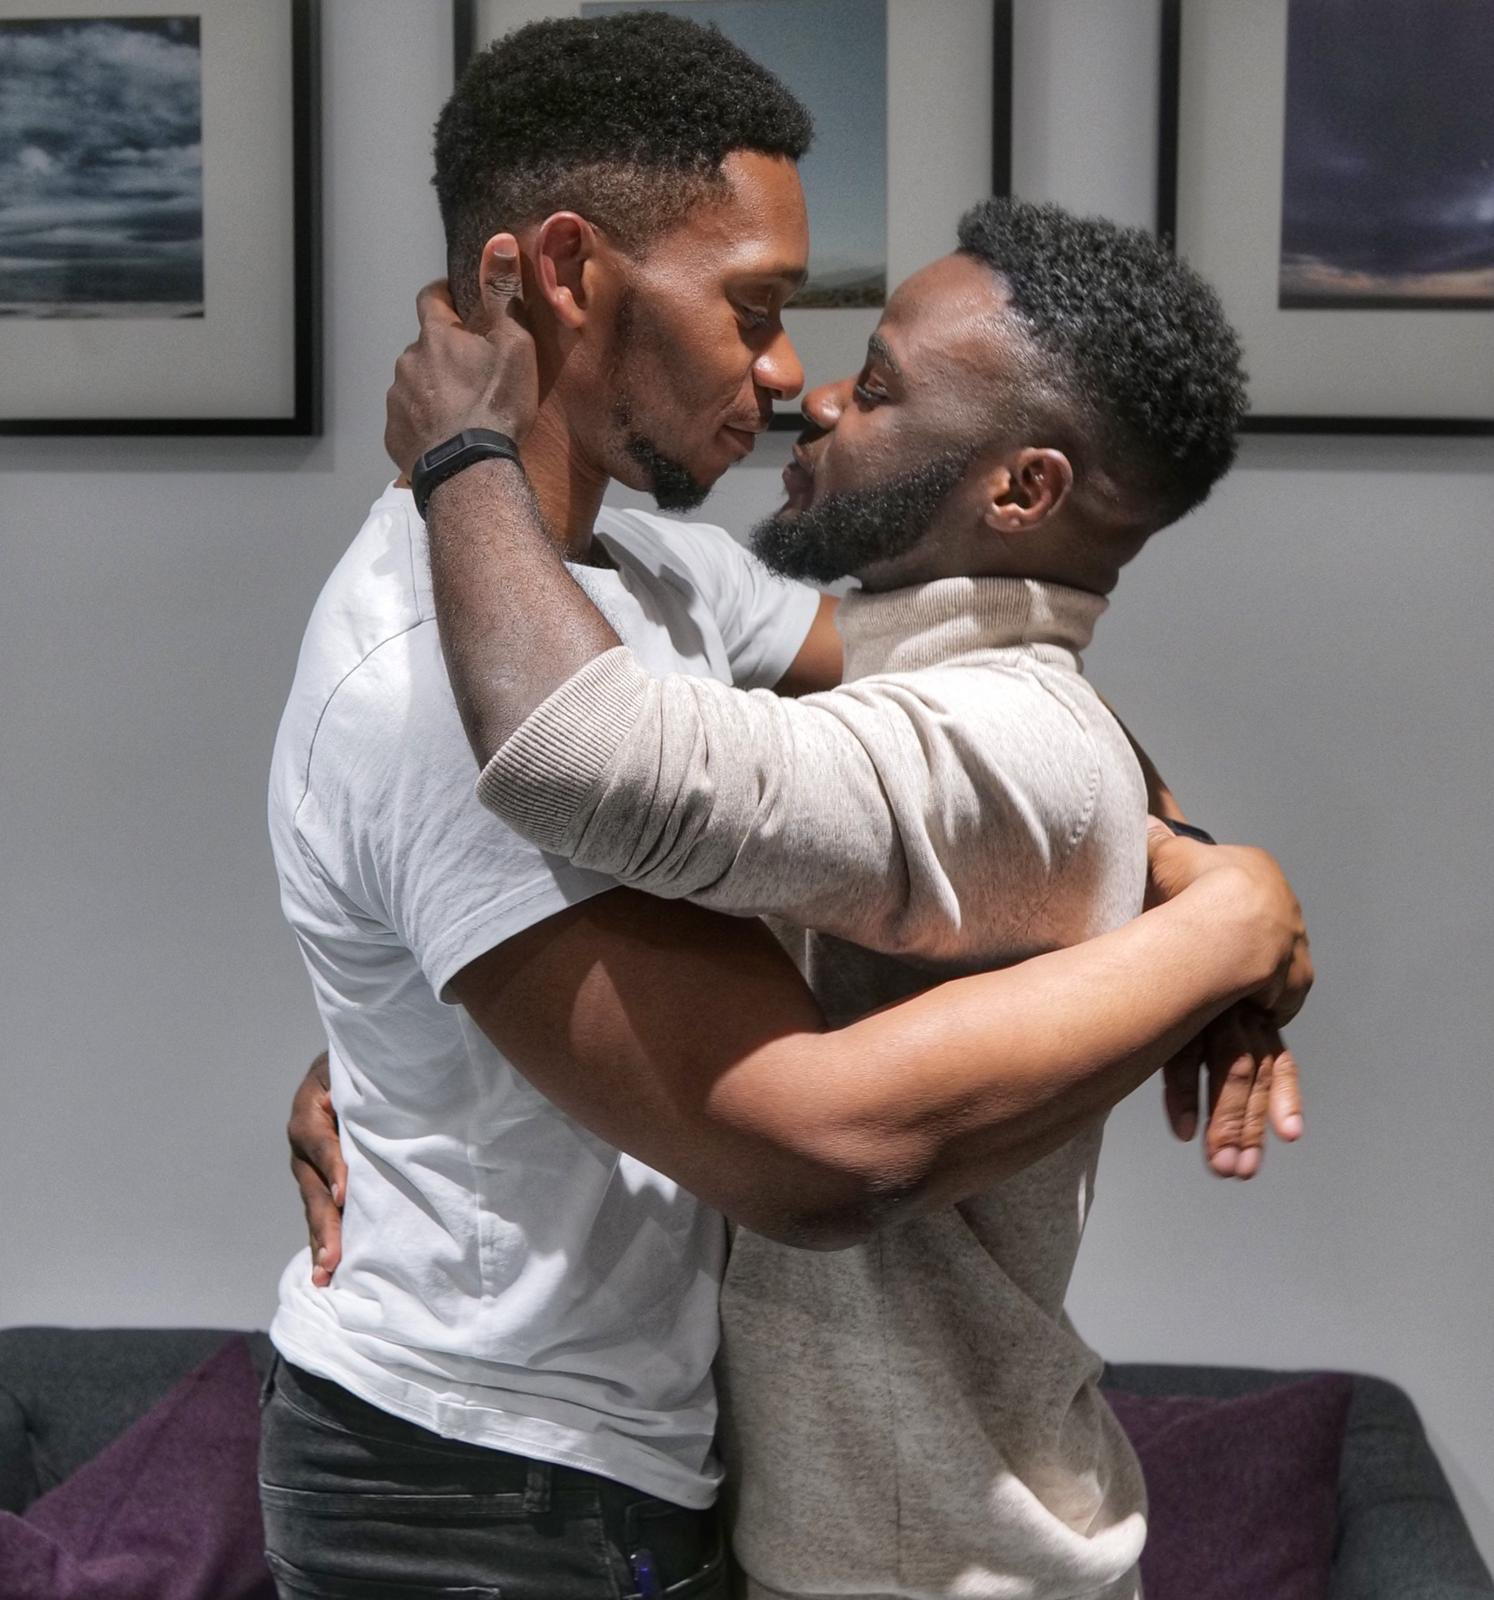 Nigerian man comes out as gay via instagram poll, receives death threats